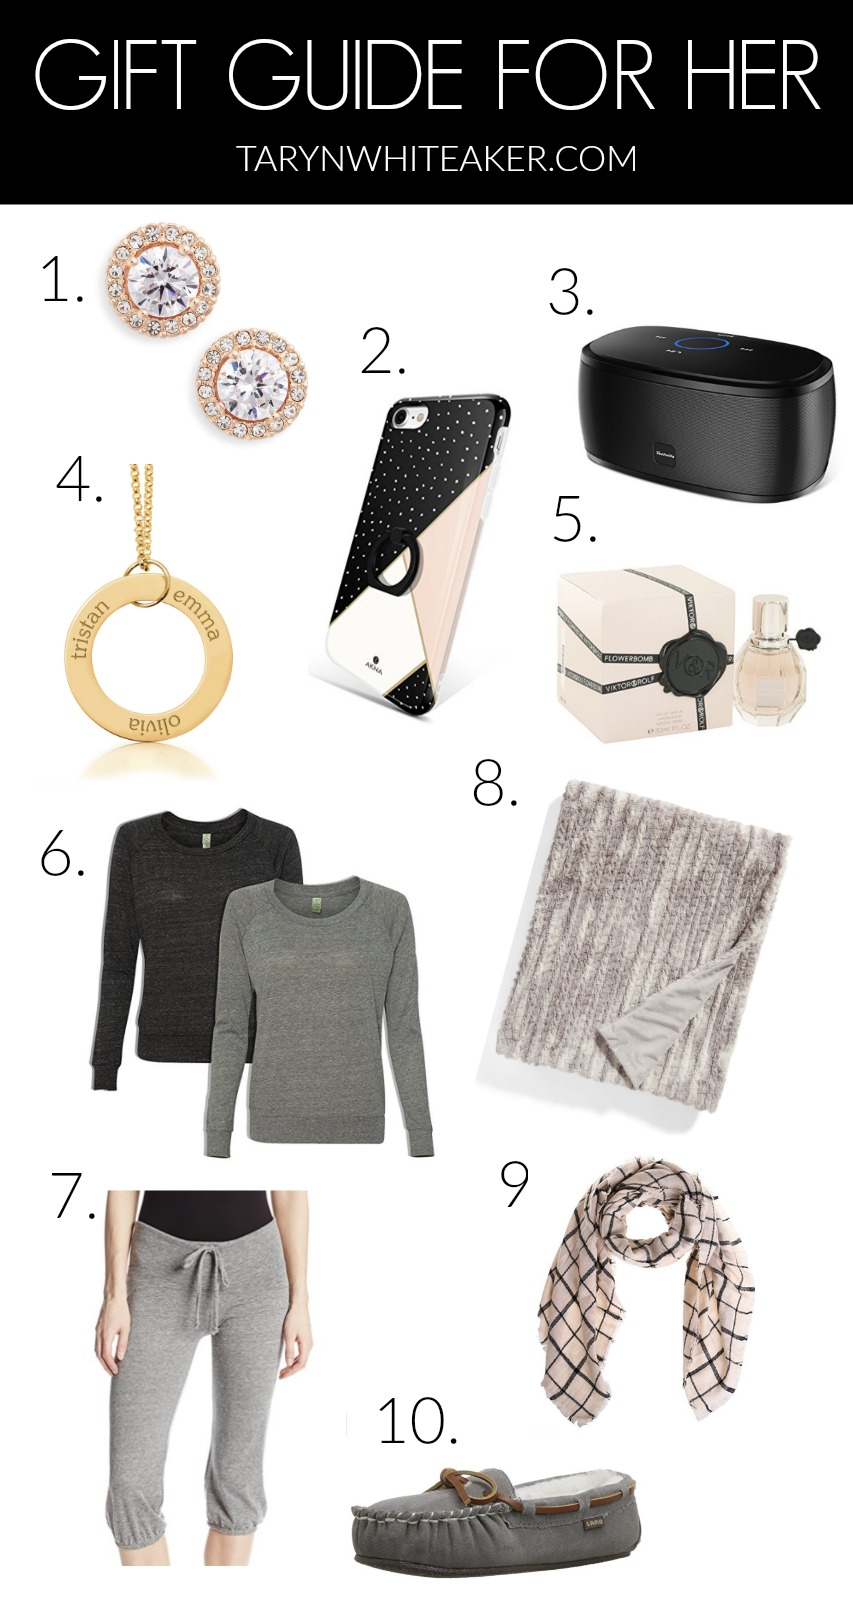 Here is the ultimate Gift Guide For Her! Grab some new ideas for your own list, or send this to your significant other and drop some hints!